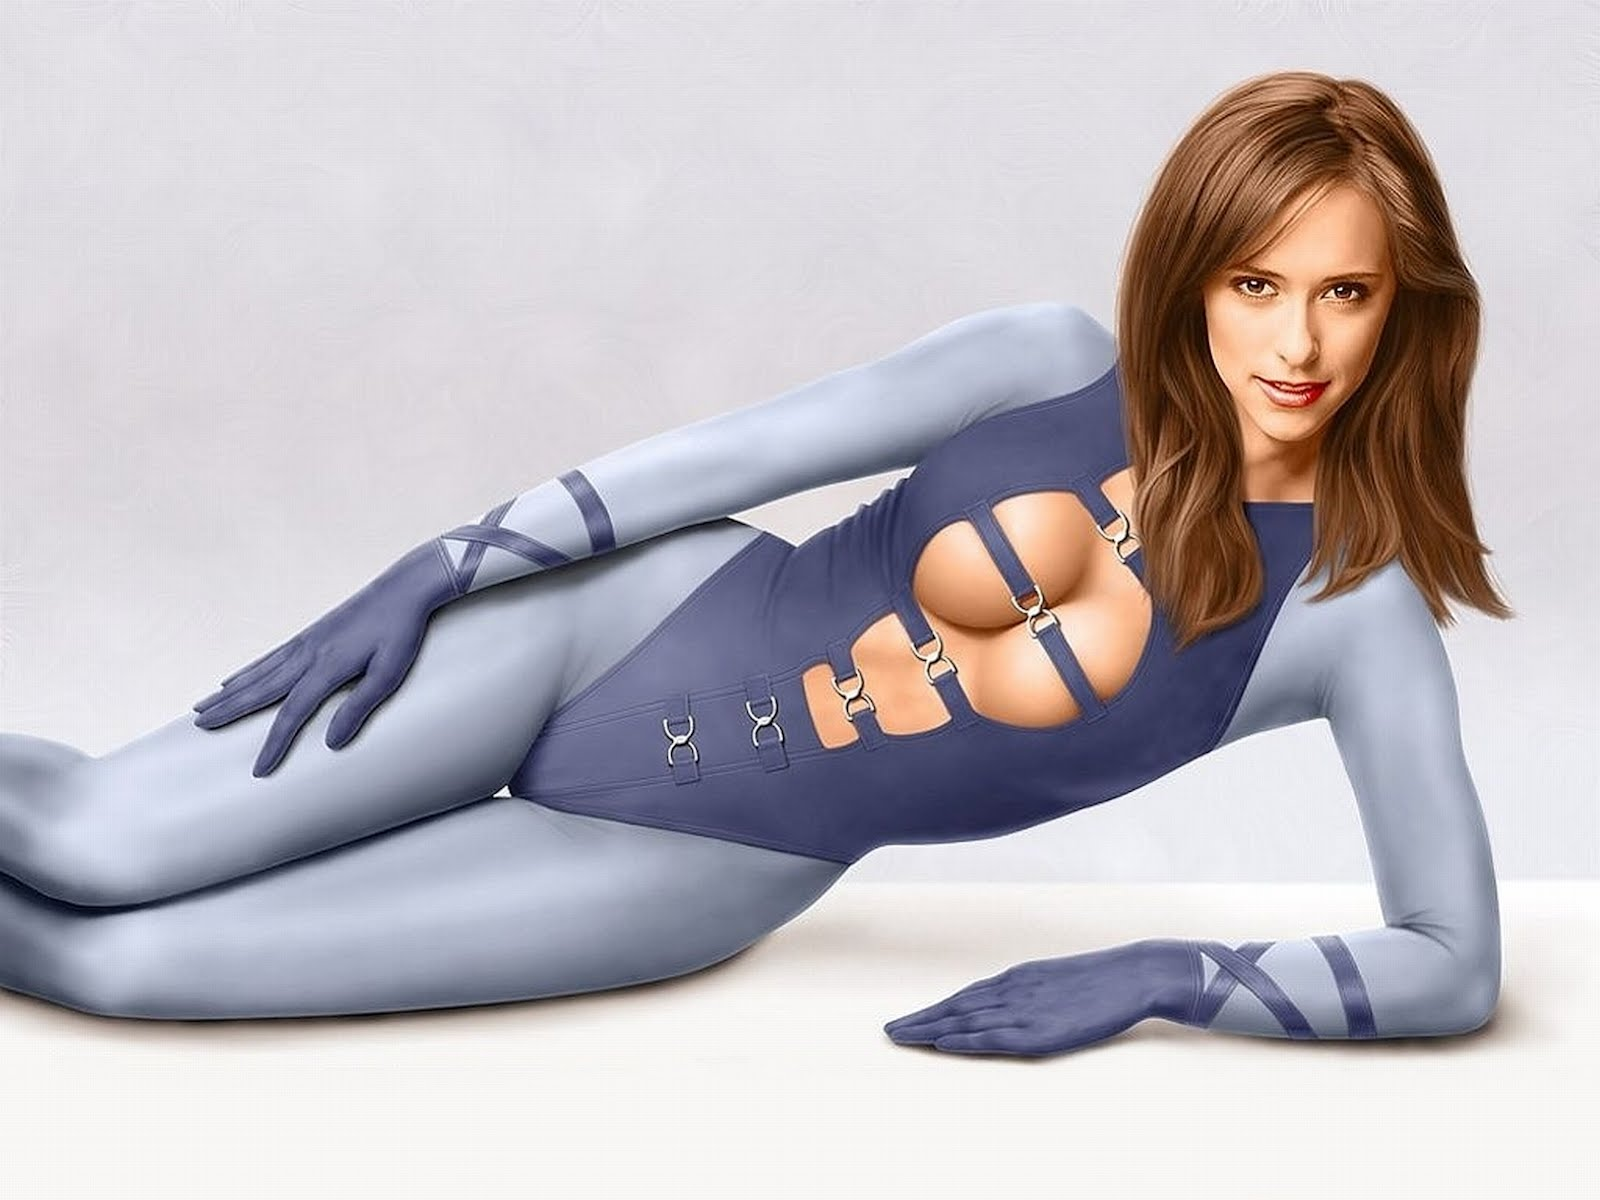 sexy blue ghost woman